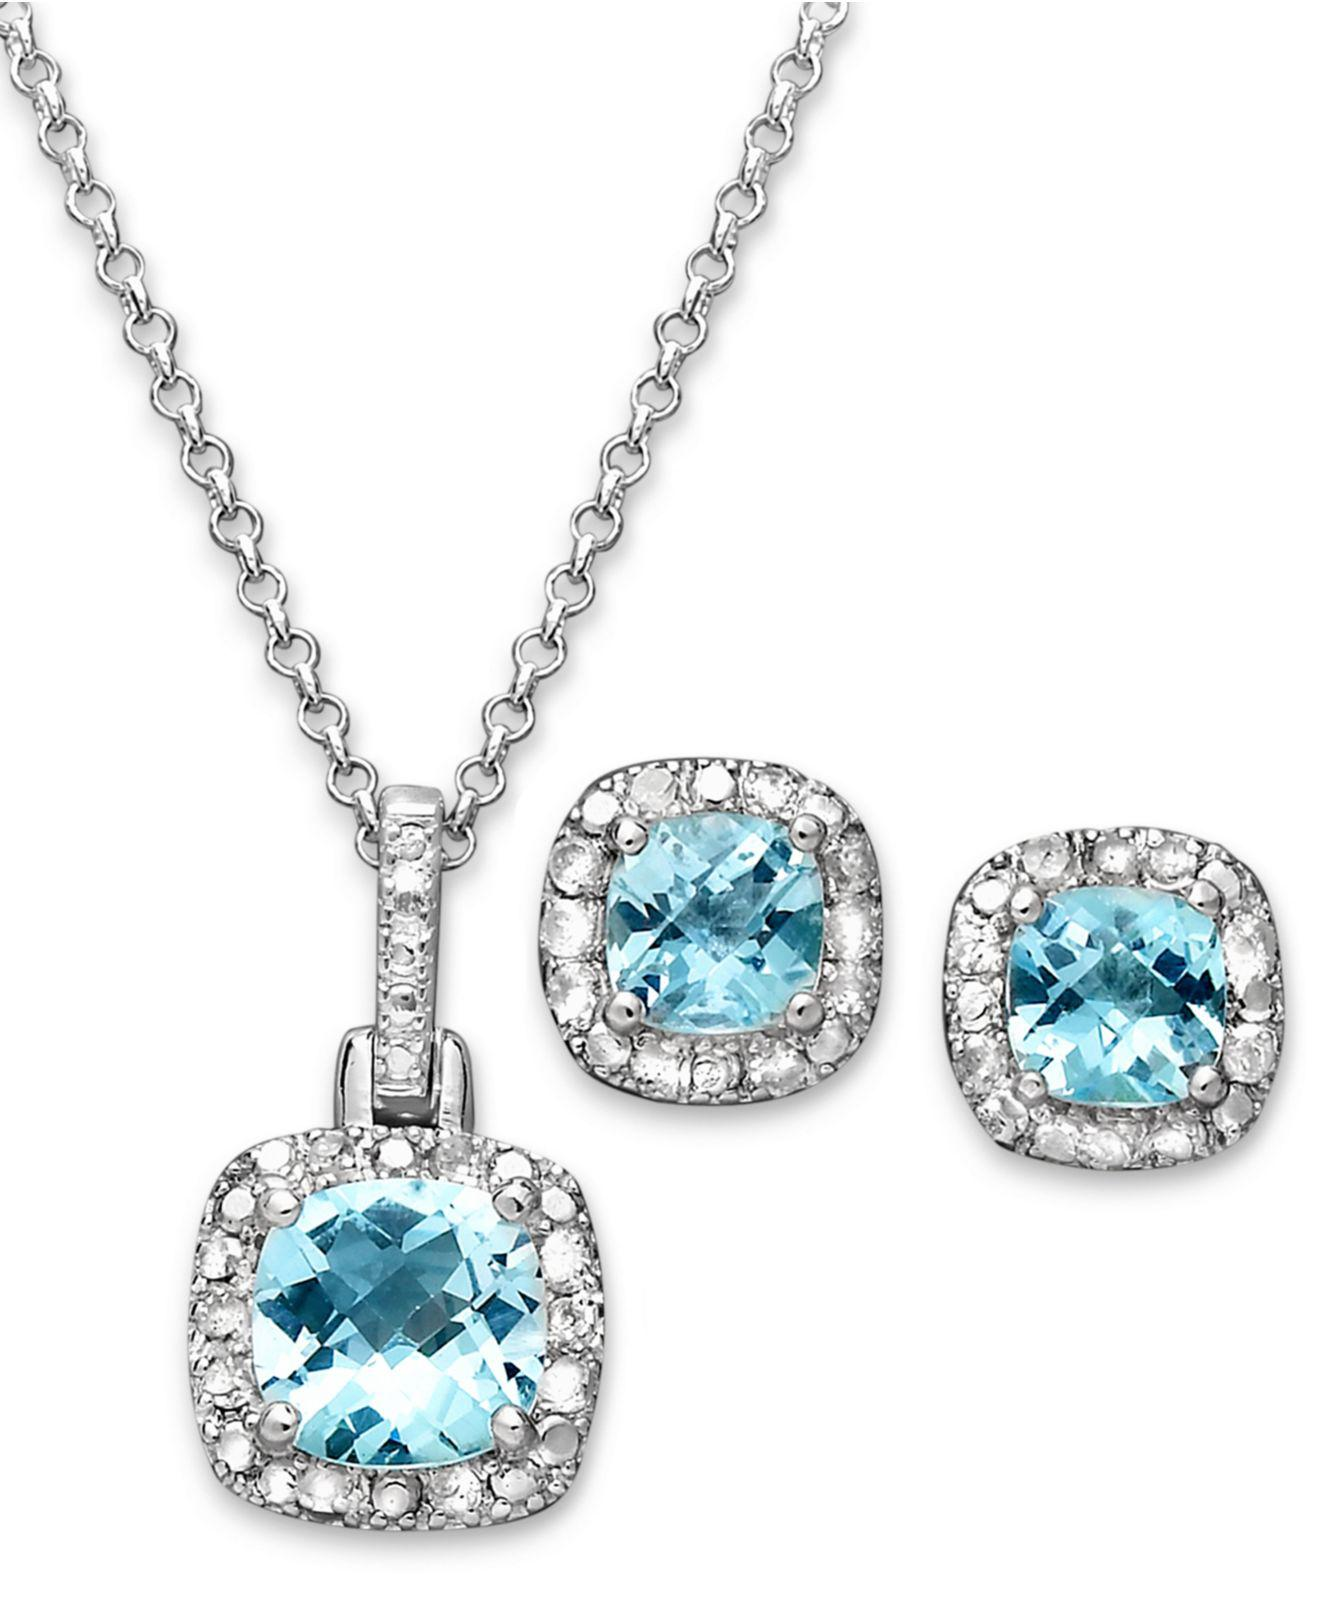 d907ac4cc Macy's Victoria Townsend Sterling Silver Earrings And Necklace Set ...